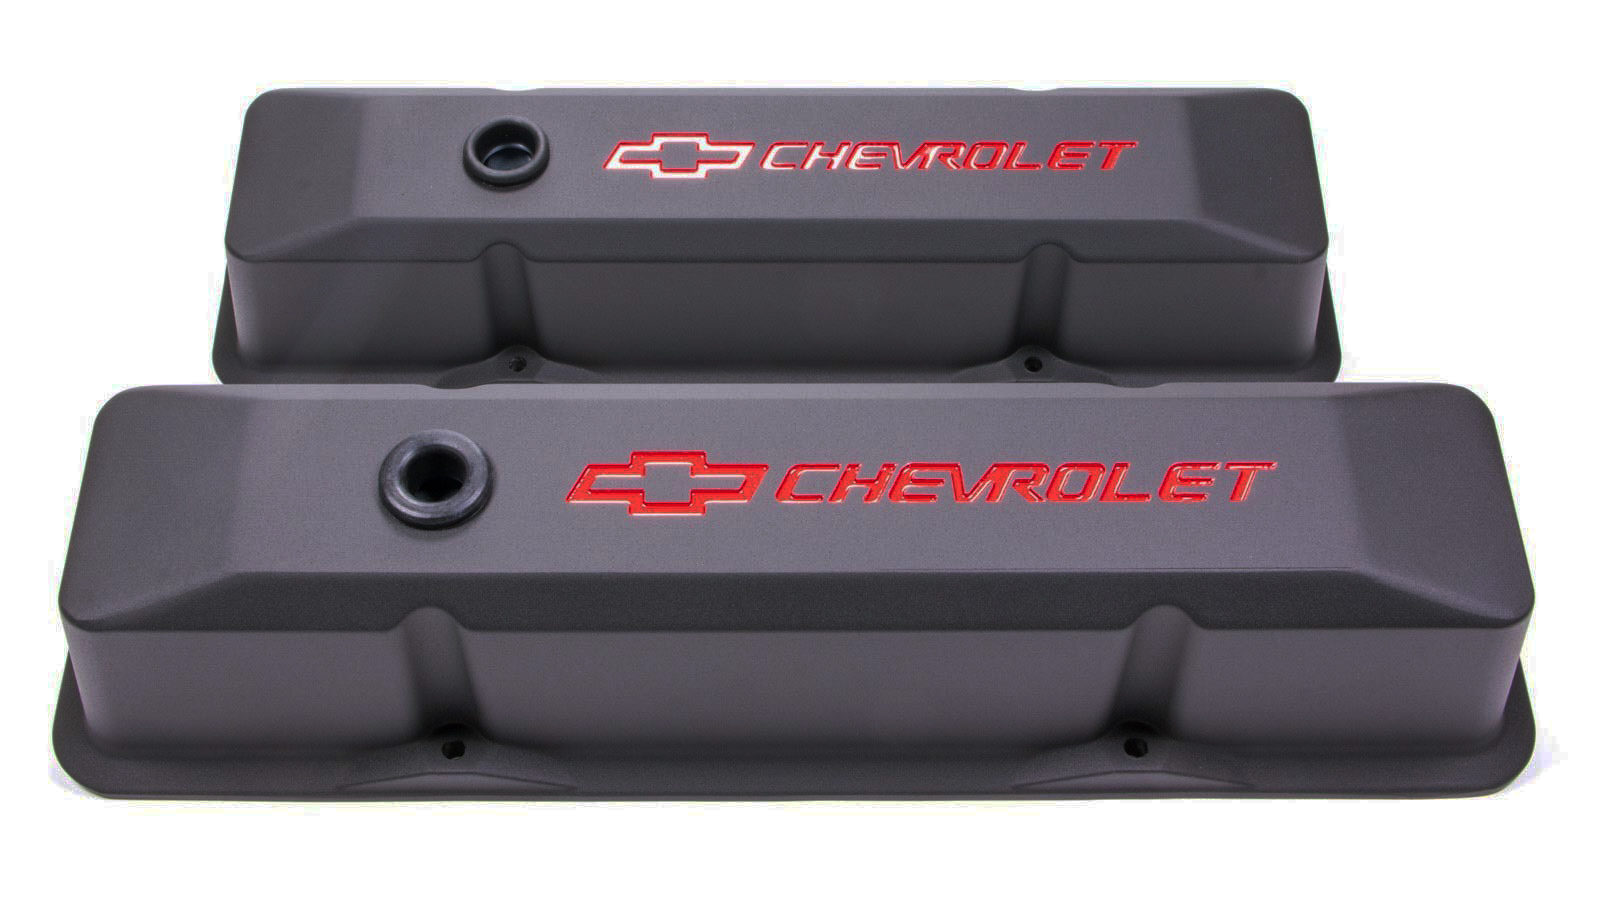 Proform 141-116 Valve Cover, Die-Cast, Tall, Baffled, Breather Hole, Recessed Chevrolet Bowtie Logo, Aluminum, Black Crinkle, Small Block Chevy, Pair